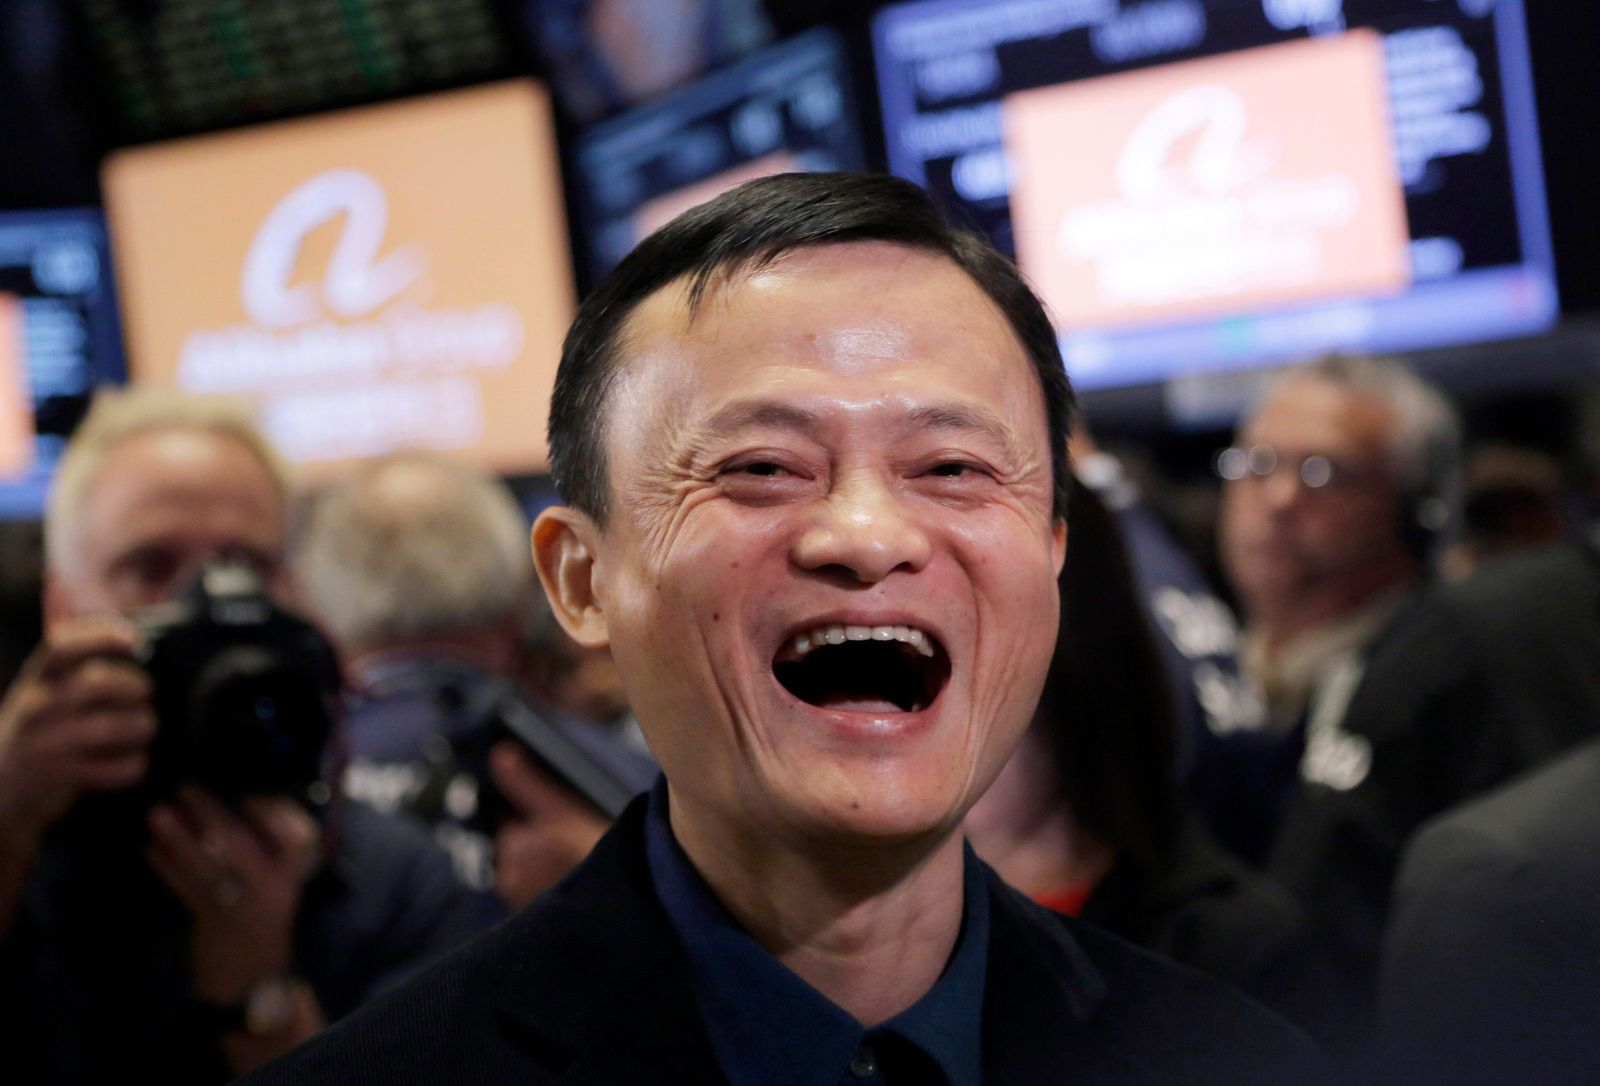 FILE - In this Sept. 19, 2014, file photo, Jack Ma, founder of Alibaba, smiles during the company's IPO at the New York Stock Exchange in New York. (AP Photo/Mark Lennihan, File)